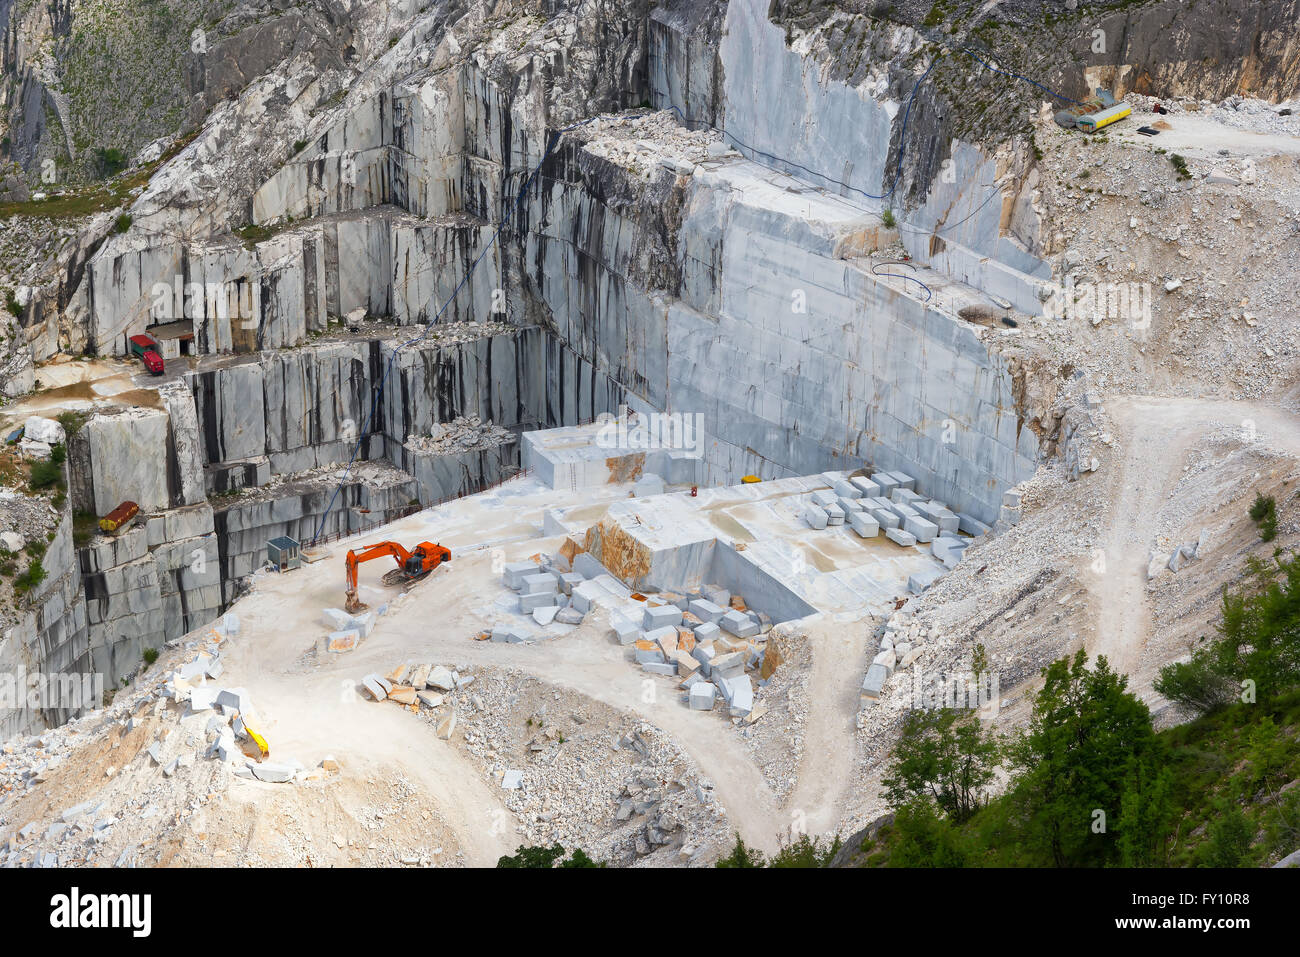 Carrara marble quarry, Tuscany, Italy - Stock Image